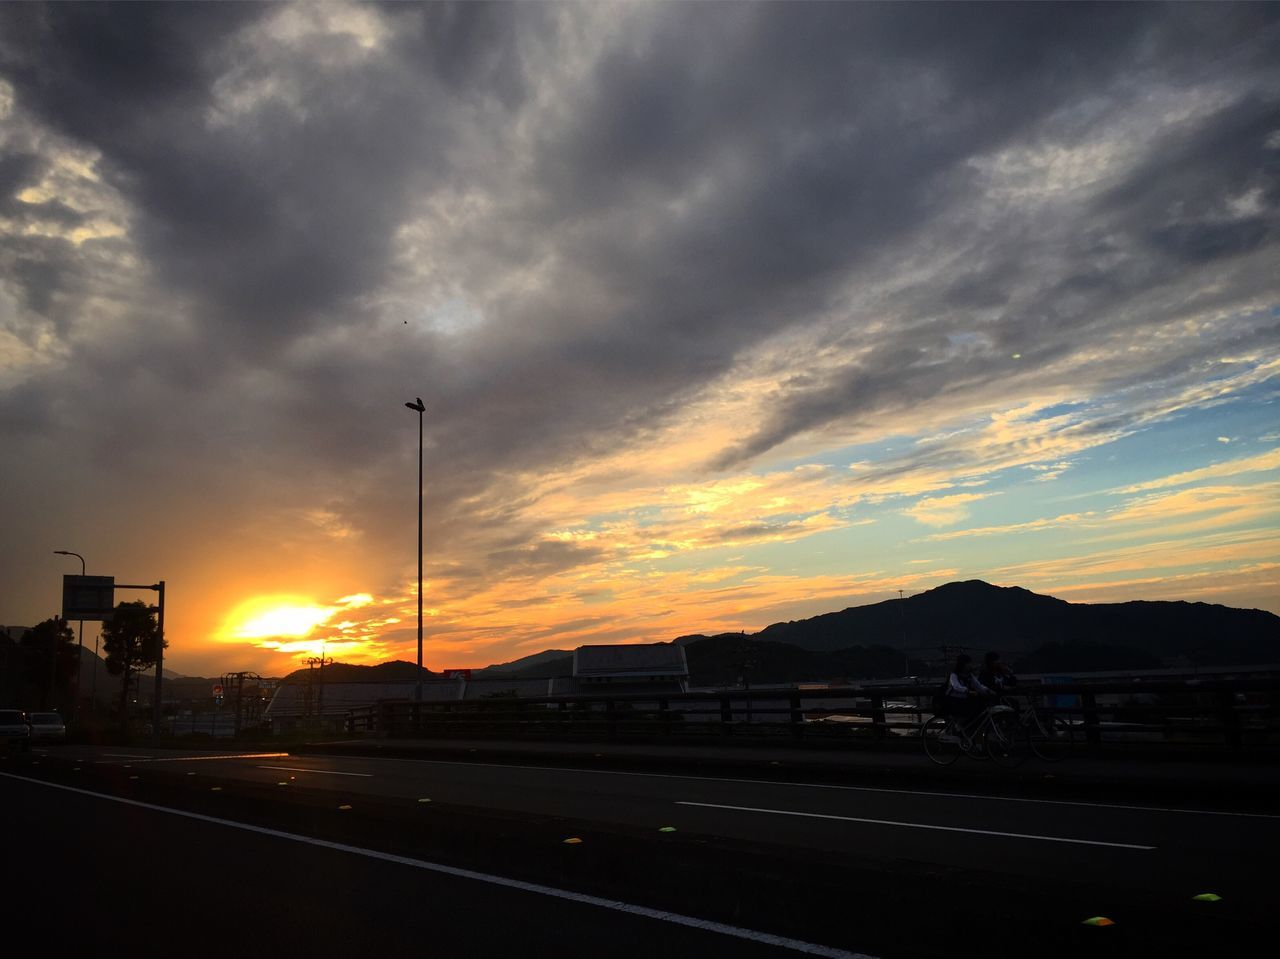 四万十 ソラ 空 夕陽 Shimanto Shimanto River Sunset Sunset Sky Cloud - Sky Japan Kochi 四万十川 日本 高知